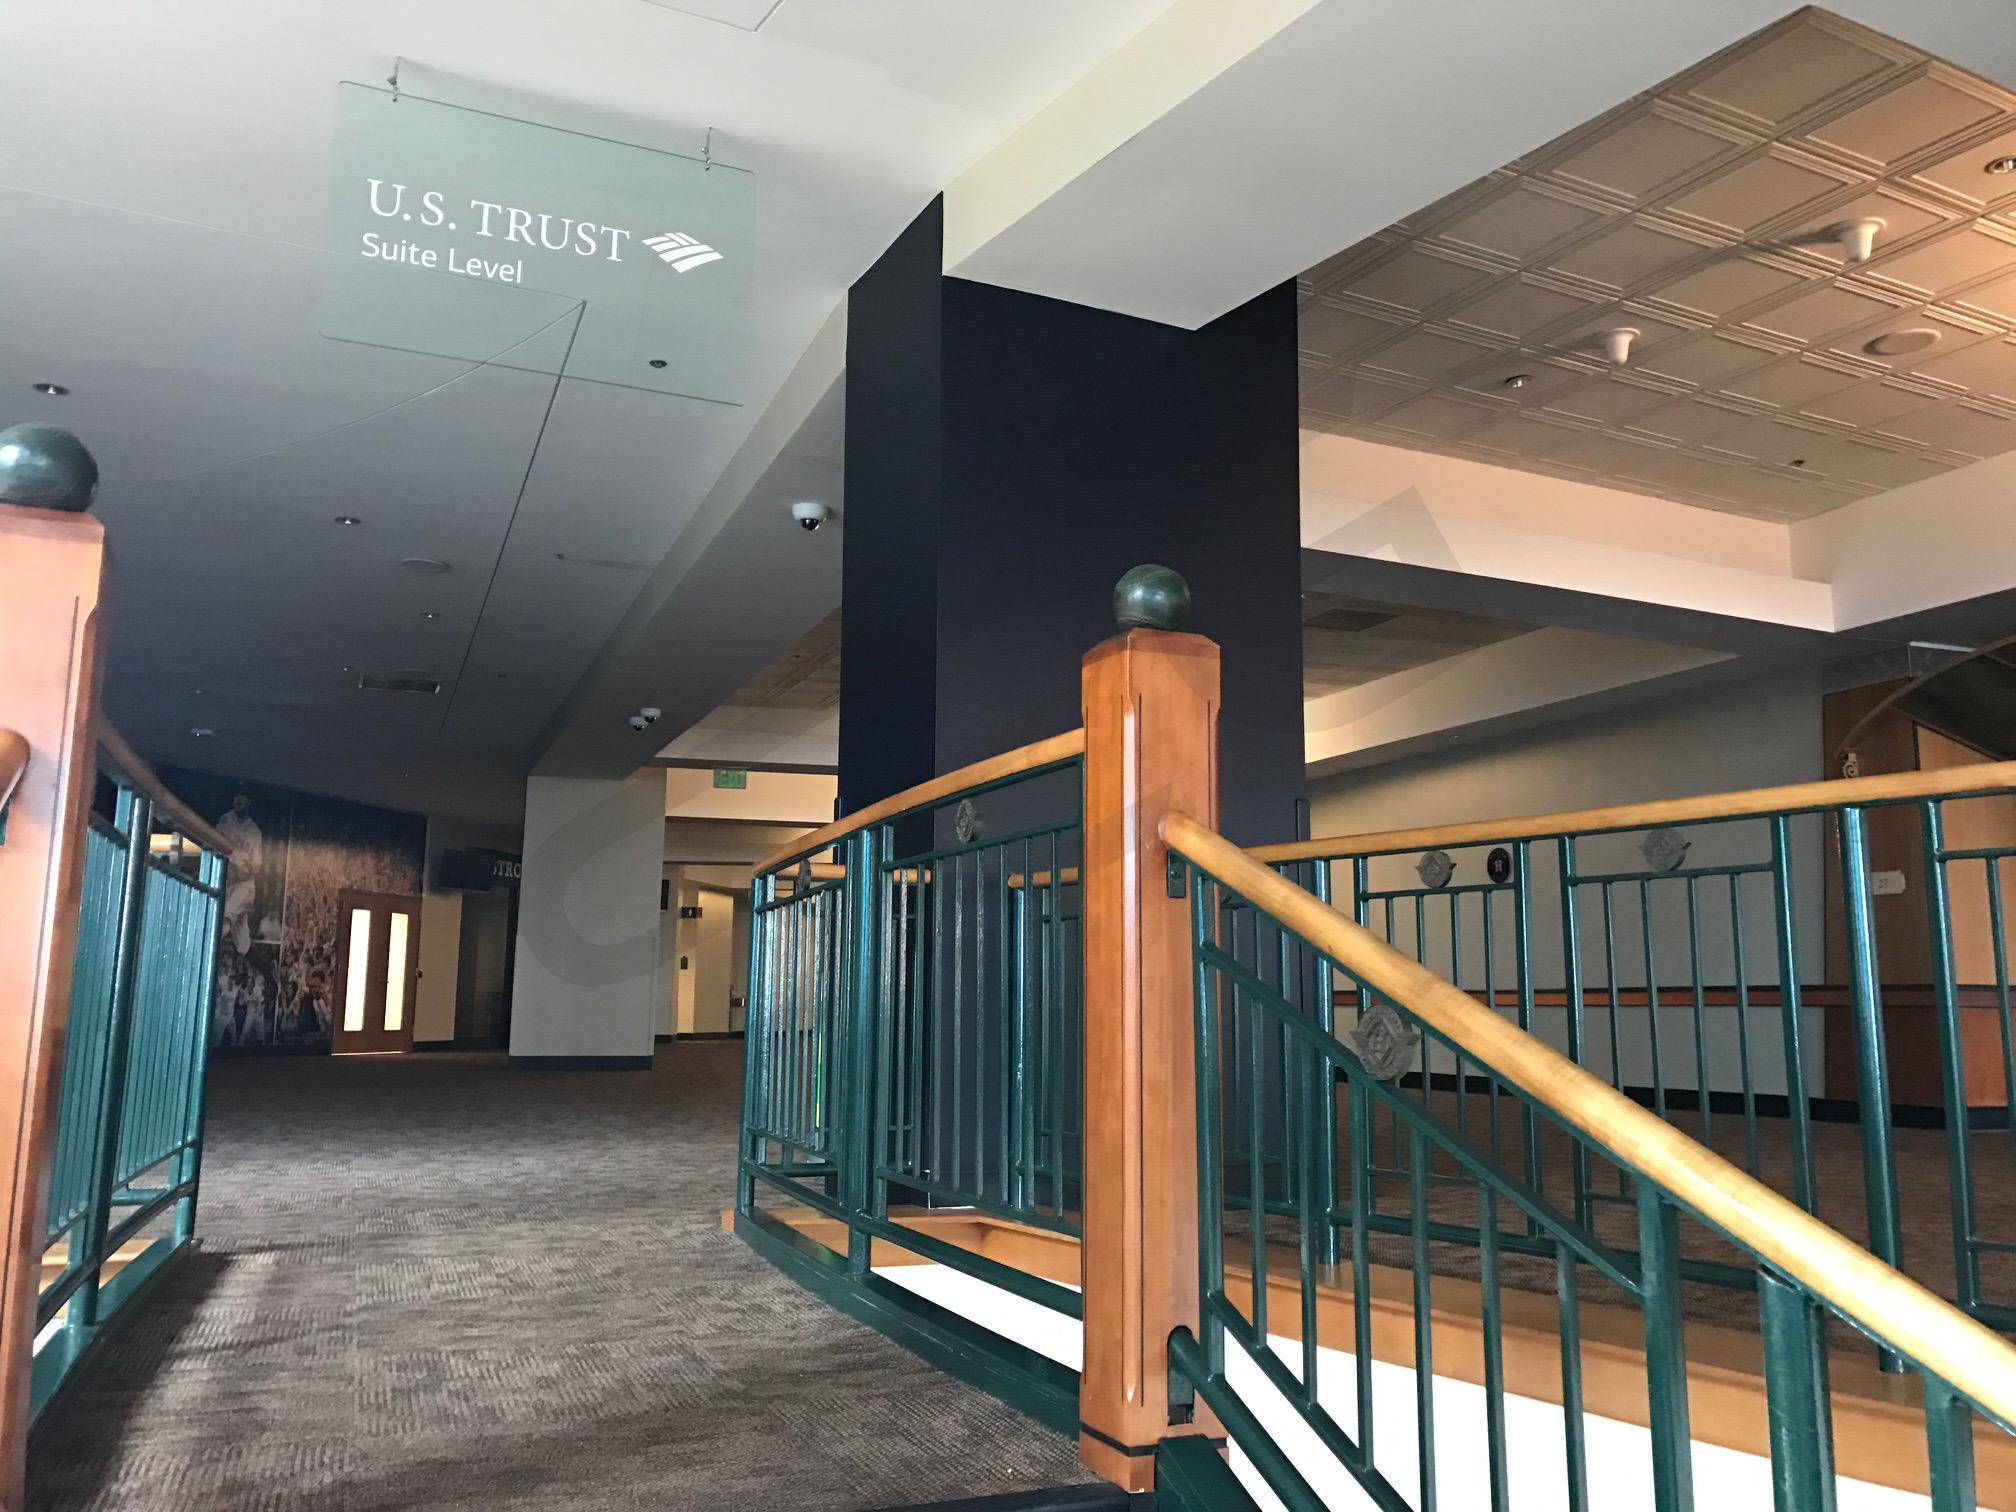 Private Suite Level Staircase